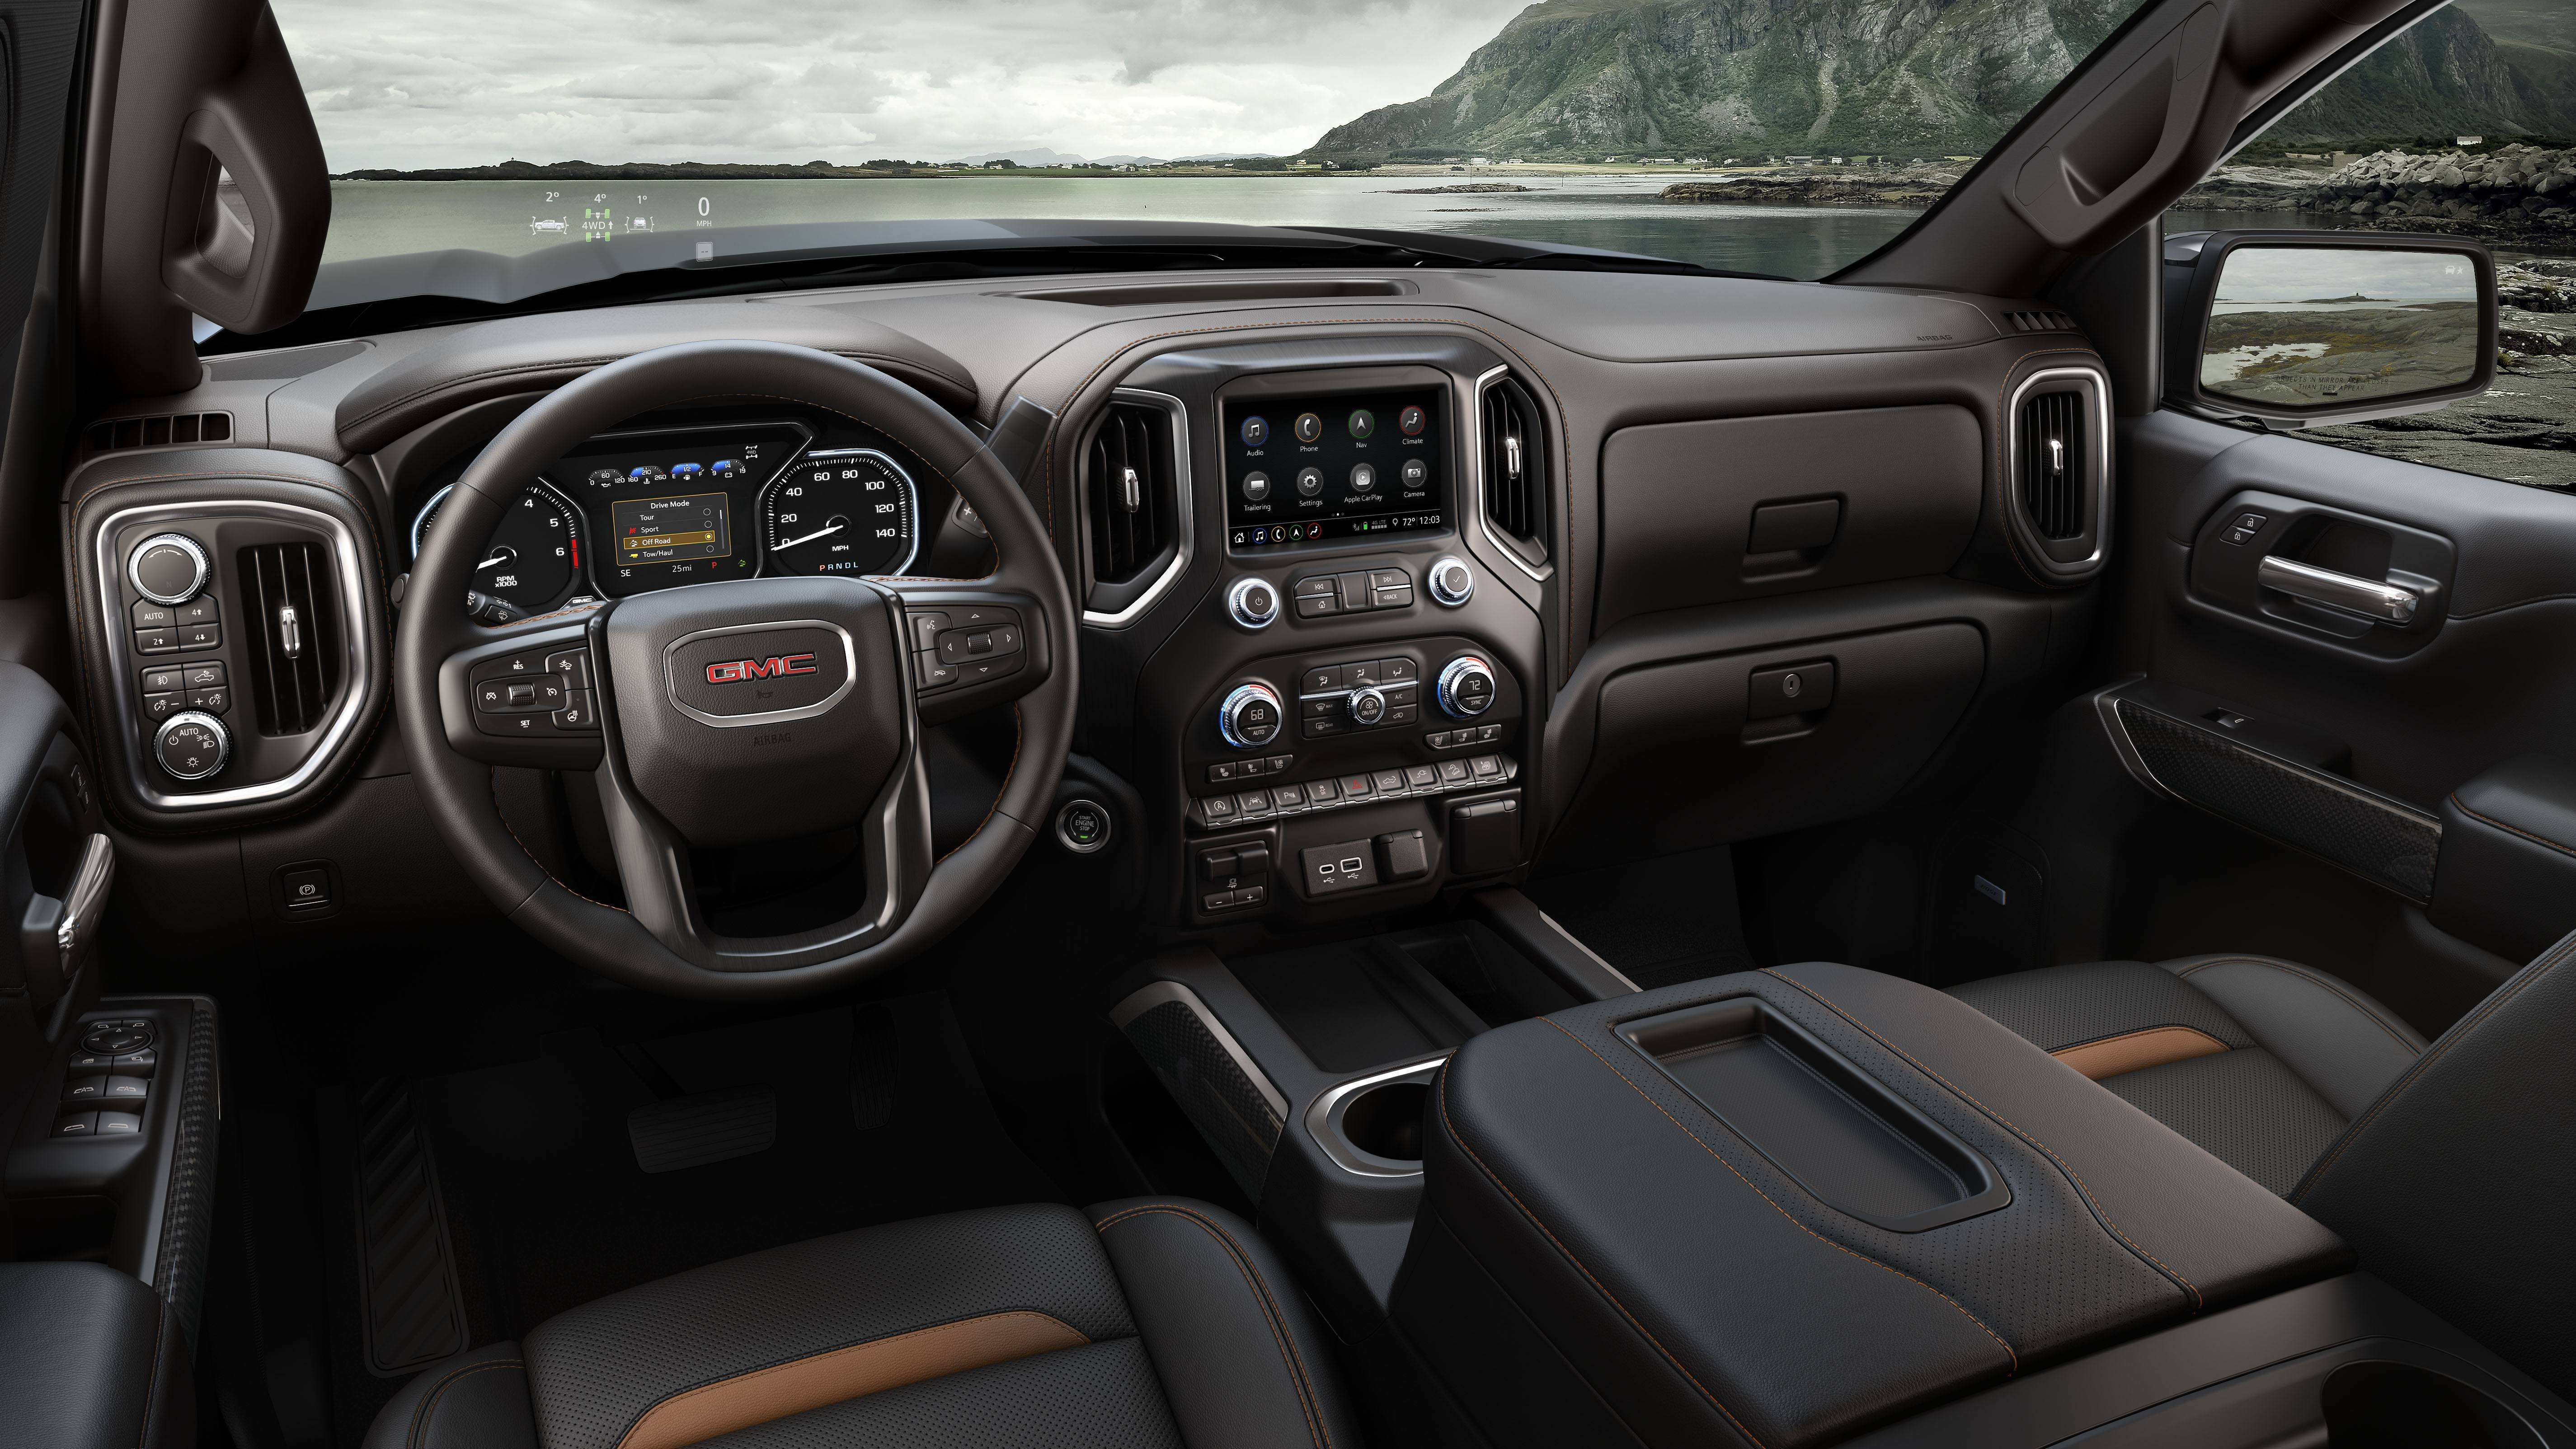 69 New 2019 Gmc Interior Ratings for 2019 Gmc Interior